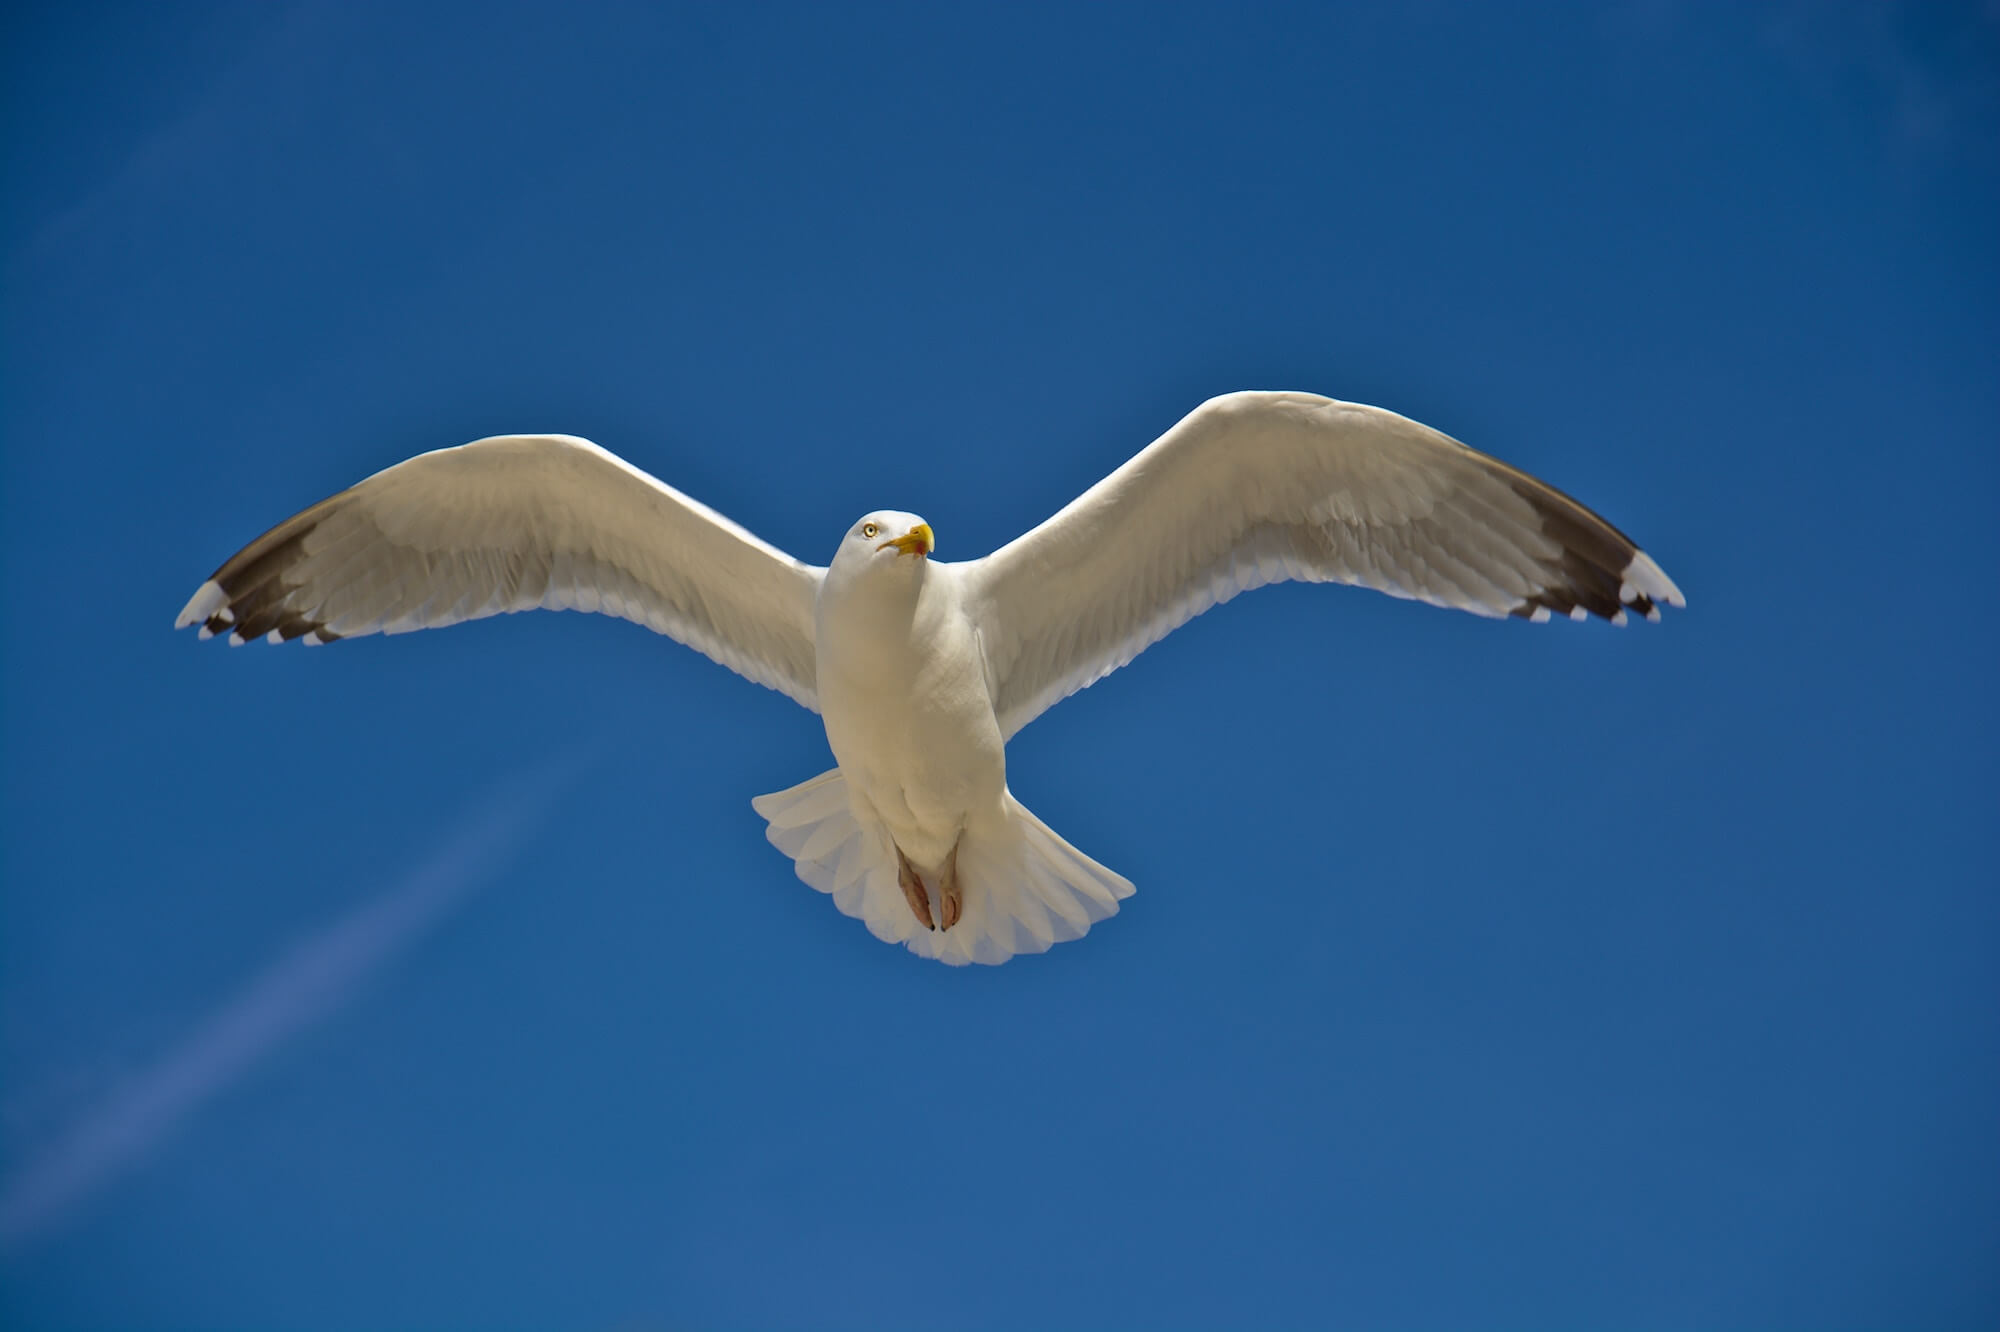 A picture of a seagull flying above the viewer